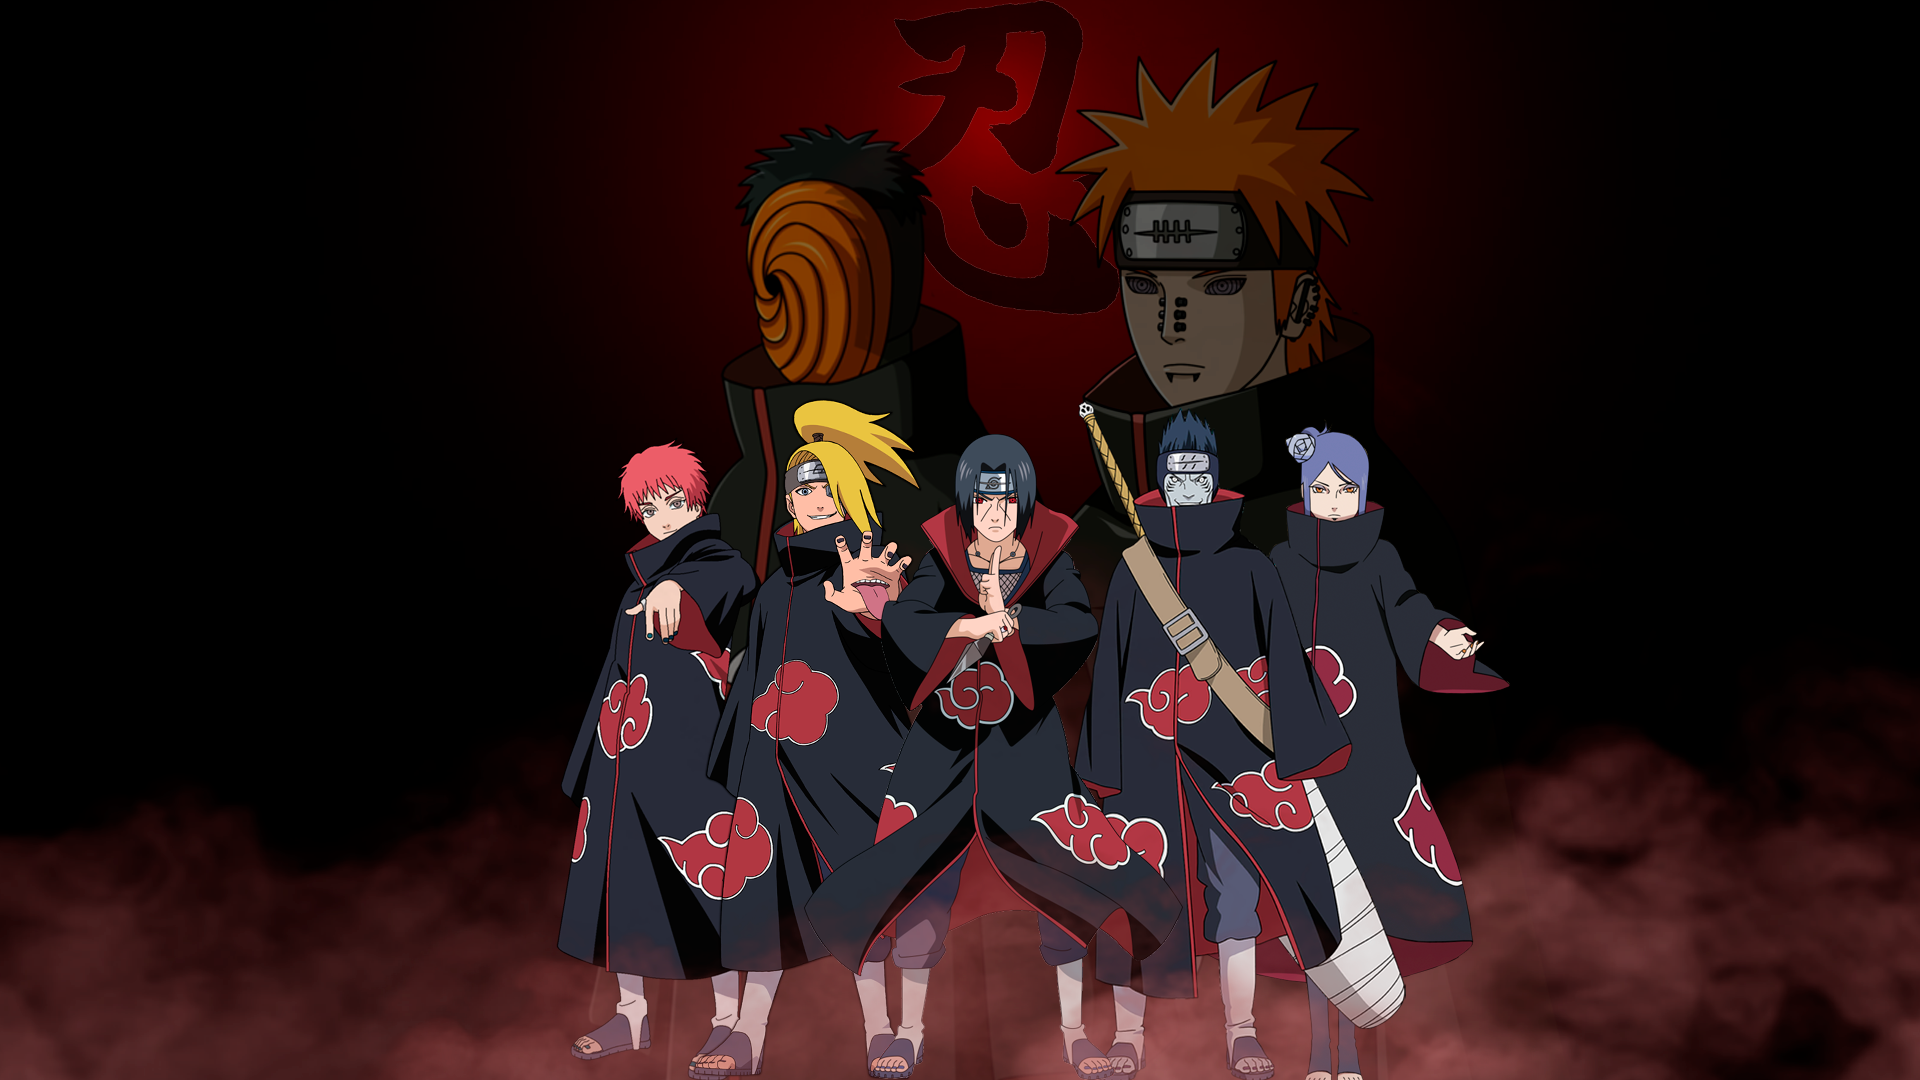 Wallpaper Of Anime Naruto Akatsuki Heroes Background Hd